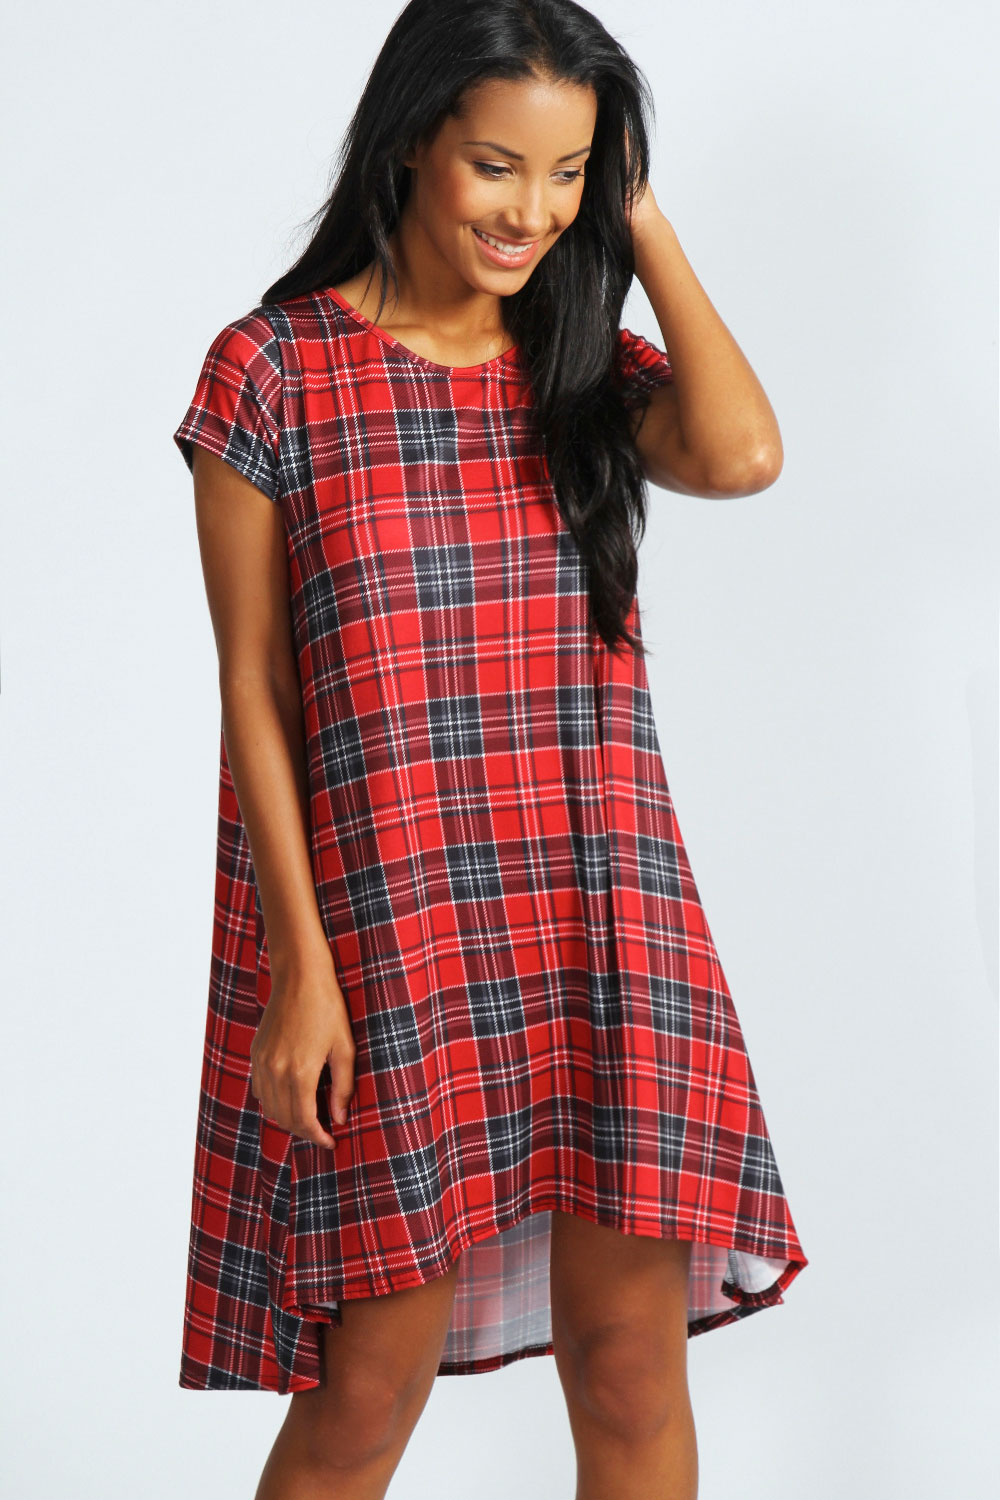 Find great deals on eBay for tartan clothes for women. Shop with confidence.